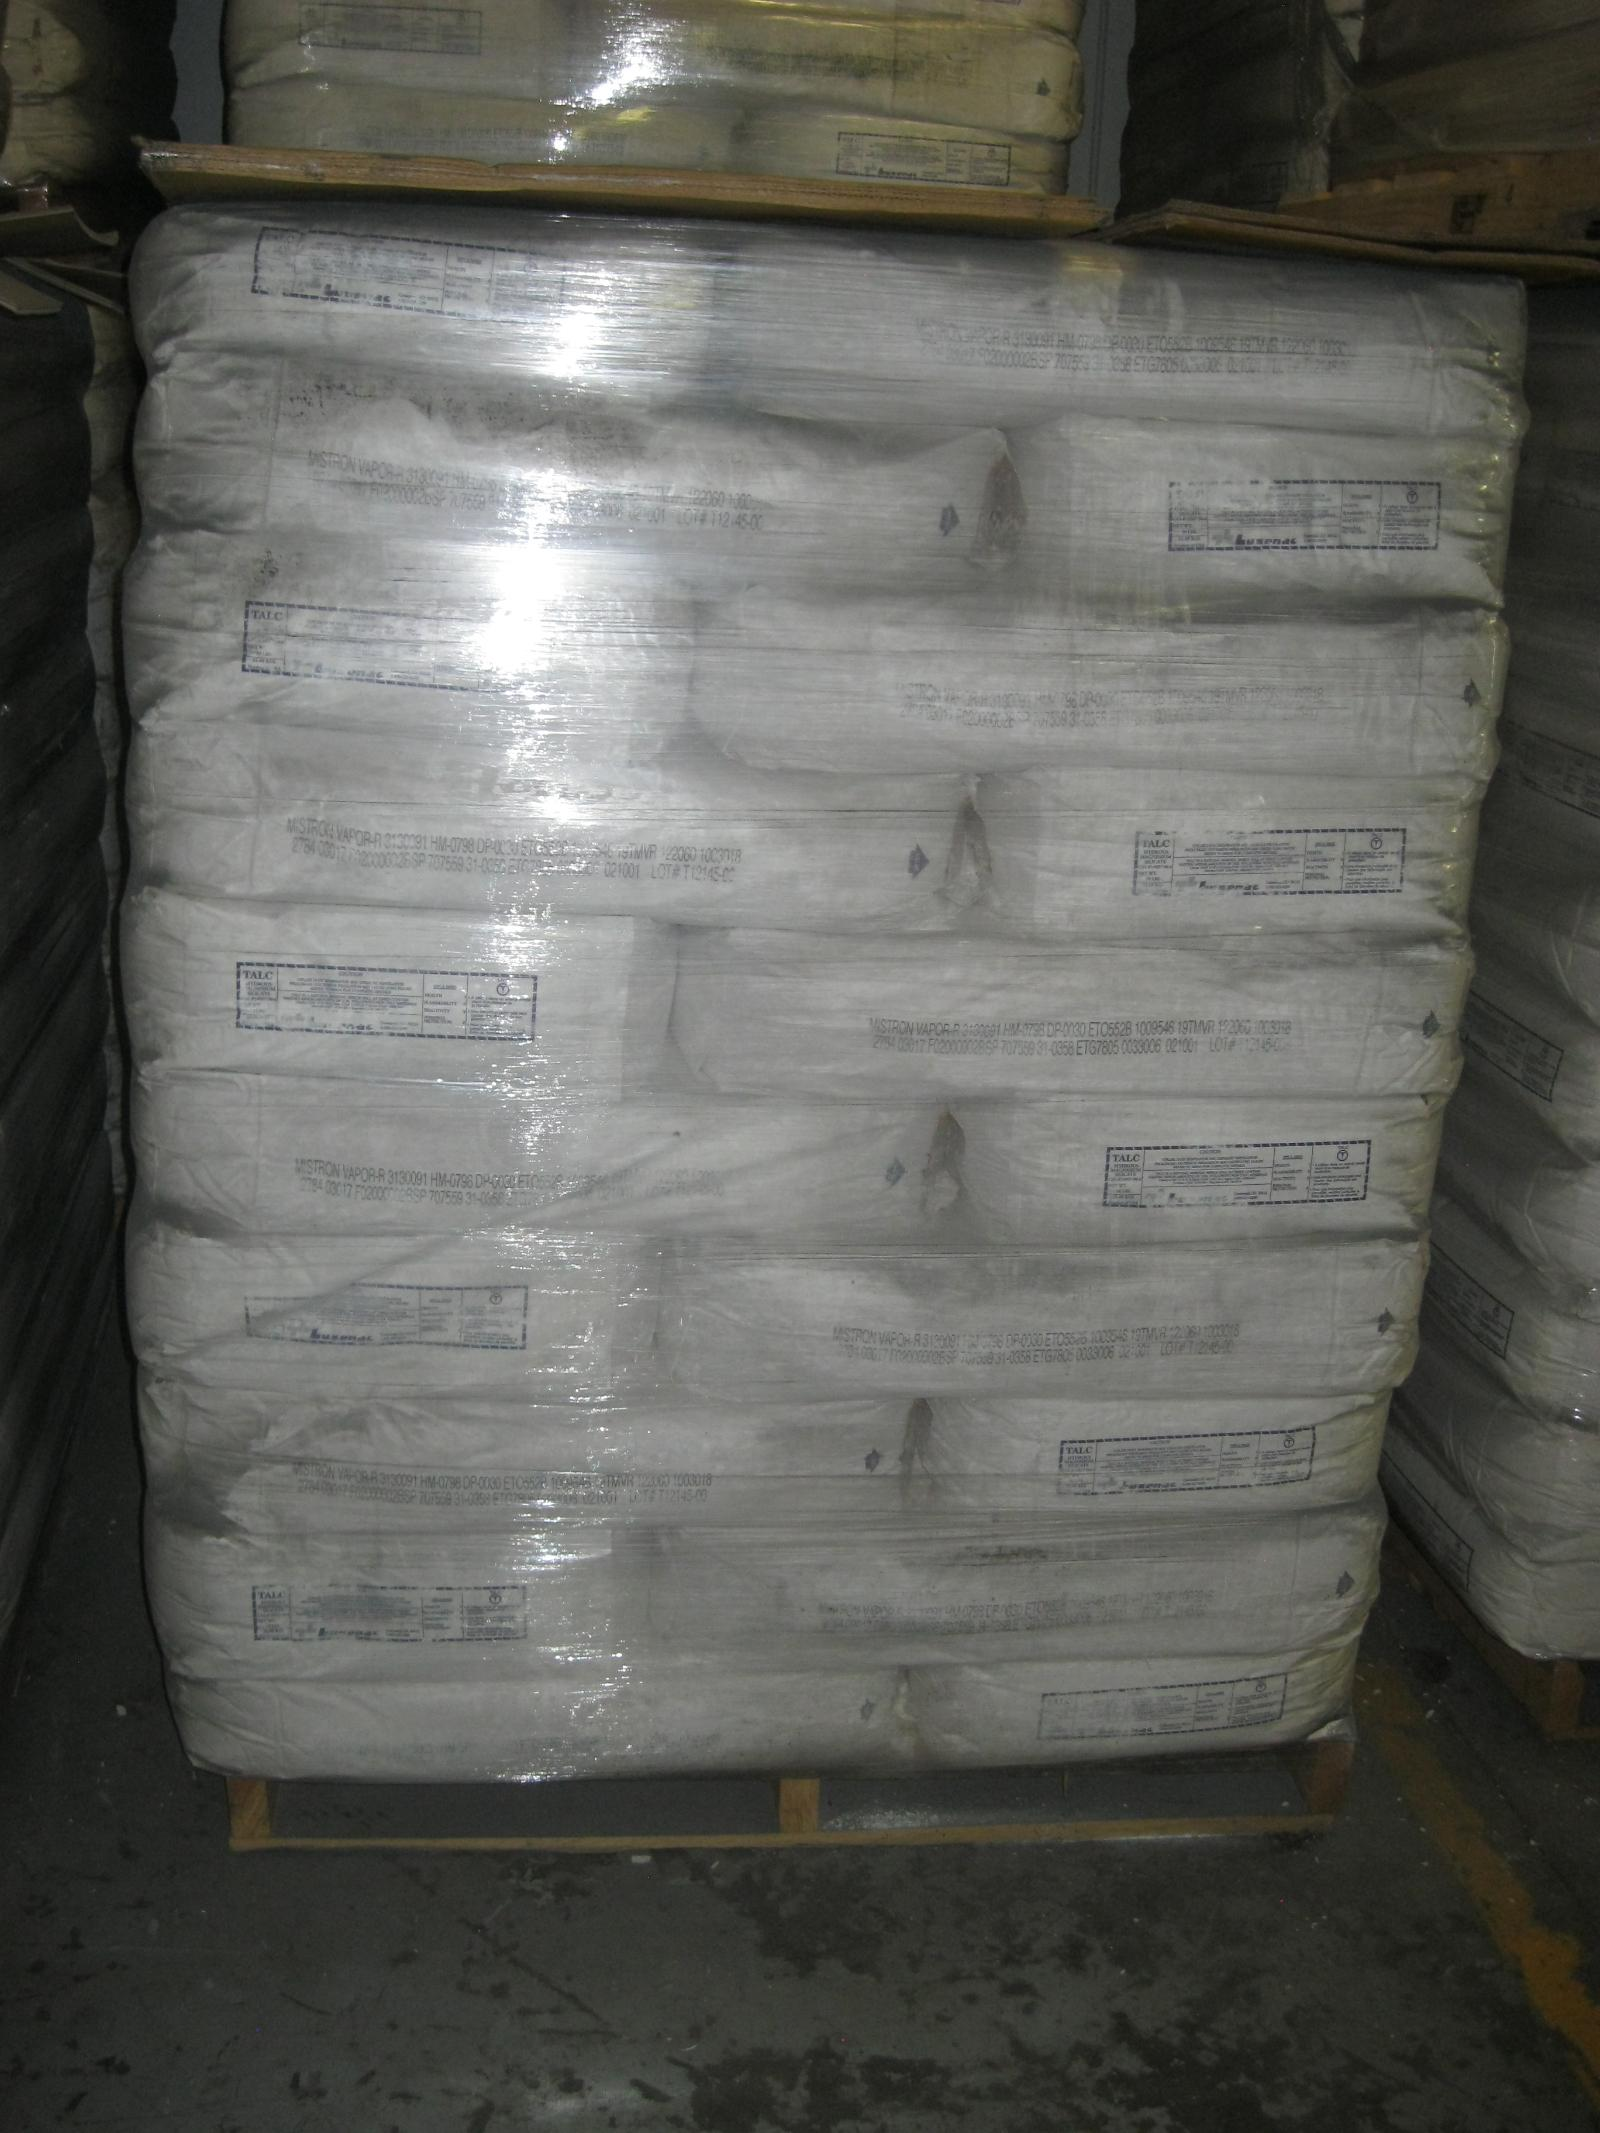 Rubber Industry: Omega Blue/Phthalo Blue Pigments; Mistron Vapor R Talc; 2244 Bromobutyl Rubber and SP 1068 Resin (18,700 Lbs)